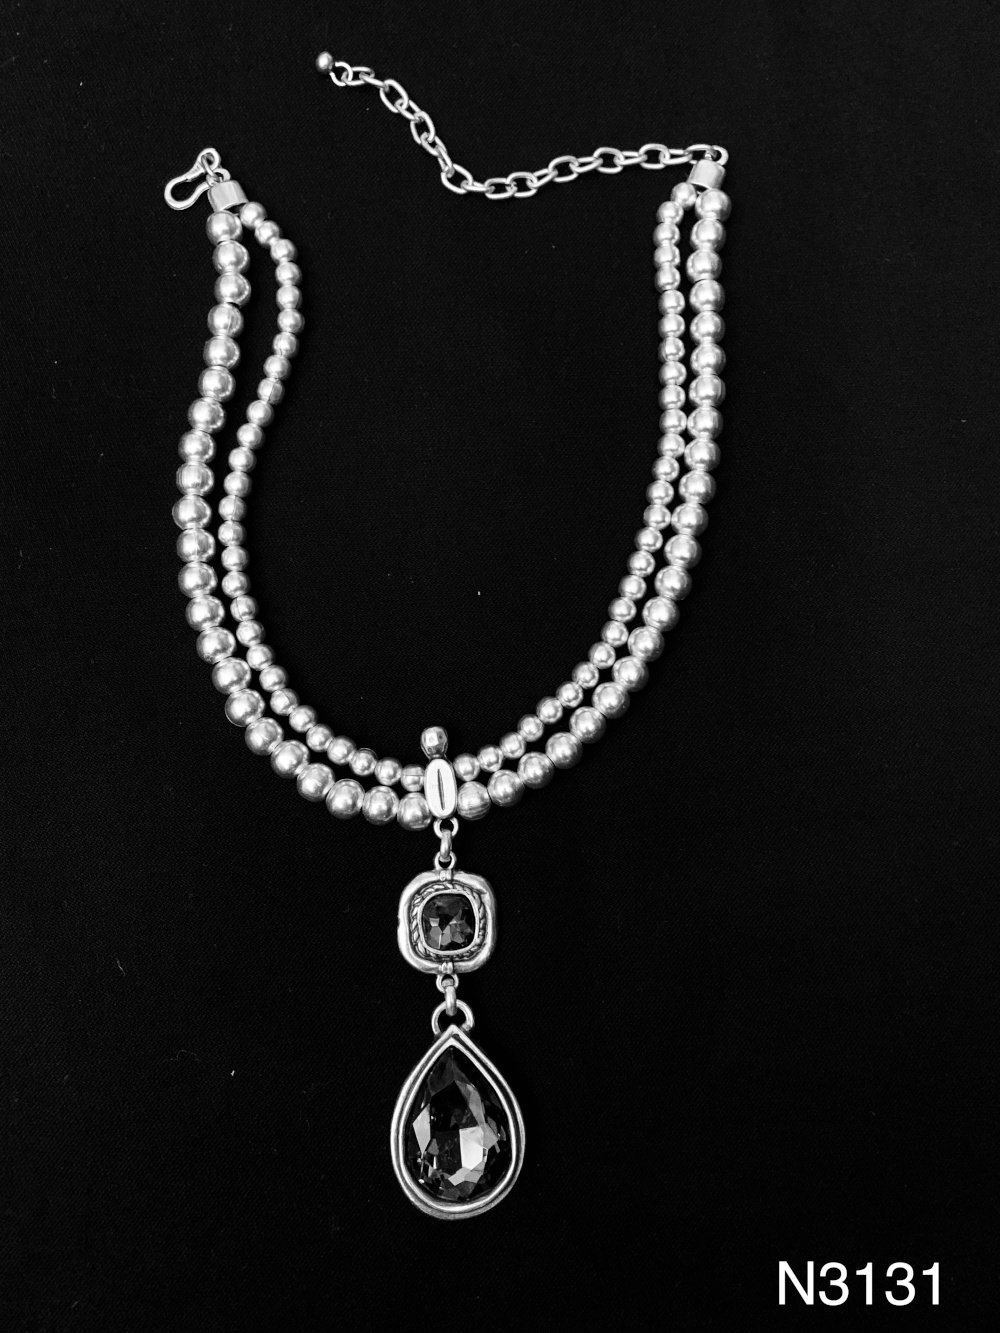 GLASS STONE NECKLACE 3131